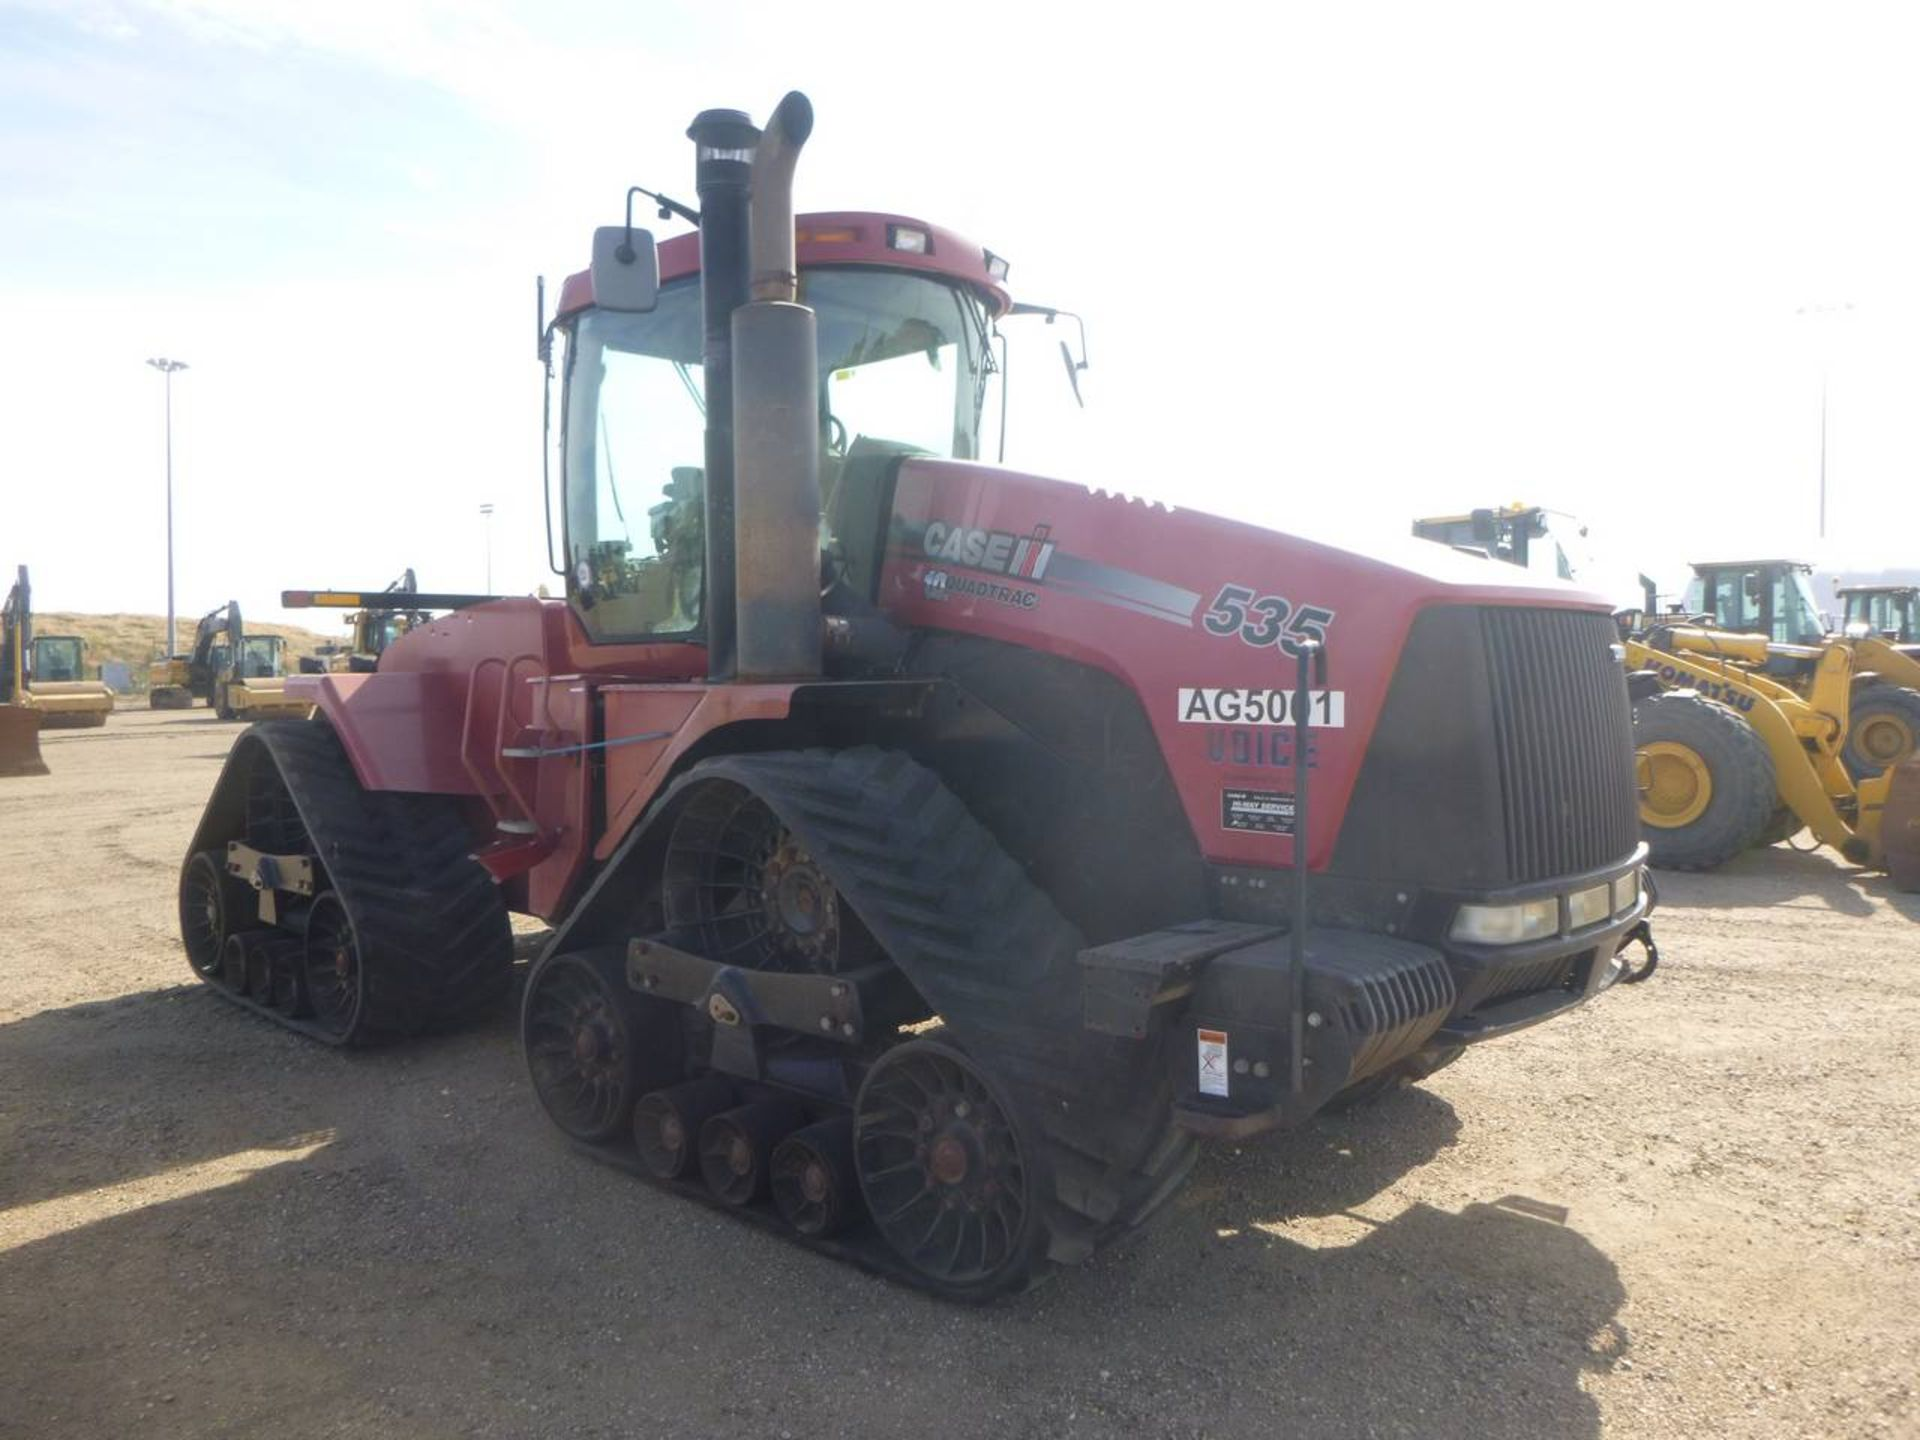 2008 Case IH 535 Tractor - Image 2 of 9